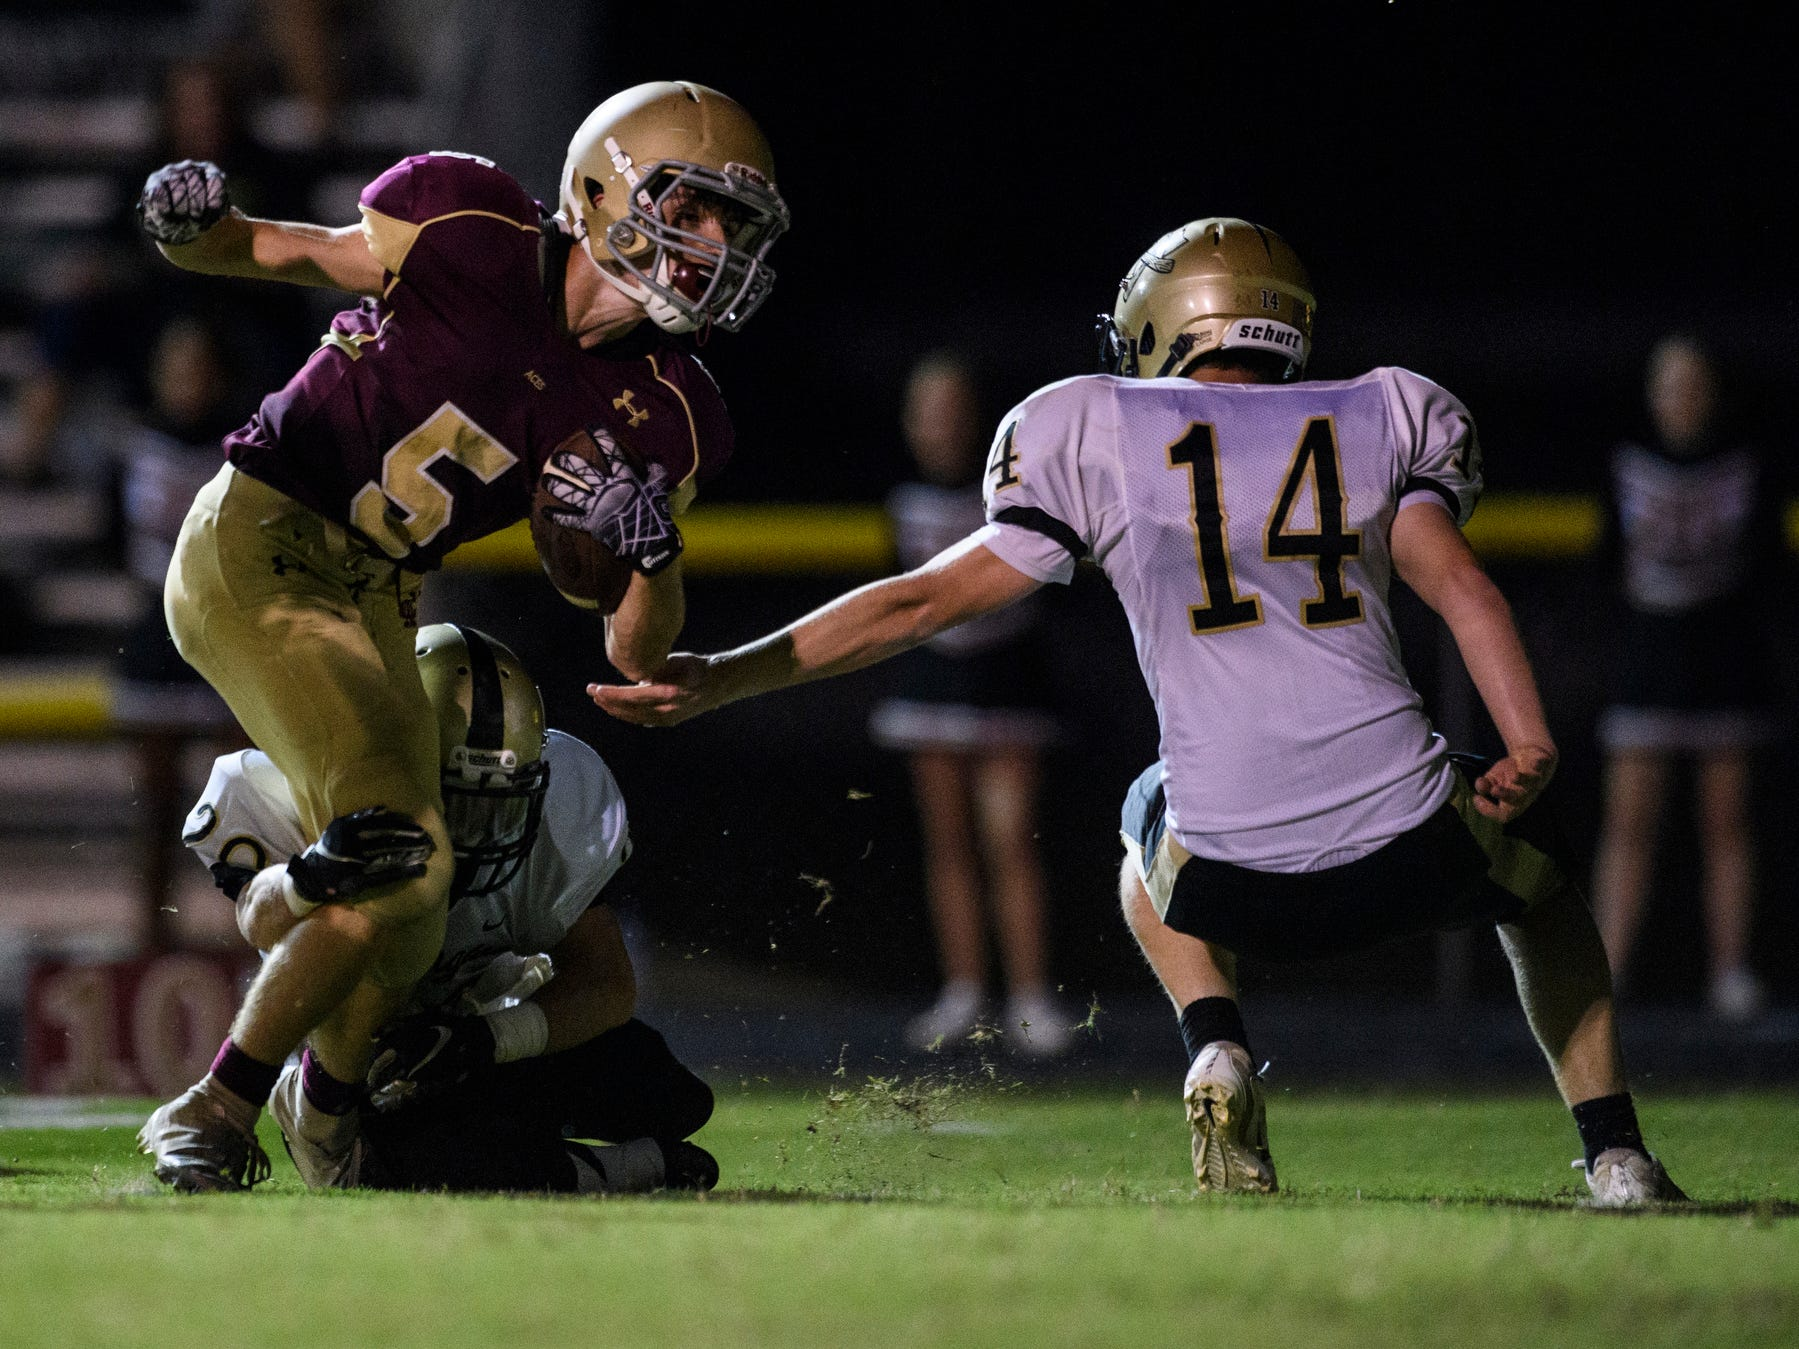 Washington's Jacob Mason (20) tackles Mount Carmel's Zeke Hadra (5) with help from Washington's Clint Ivy (14) at Riverview Stadium, known as the Snake Pit, in Mount Carmel, Ill., Friday, Sept. 21, 2018. The Golden Aces defeated the Hatchets 61-20.